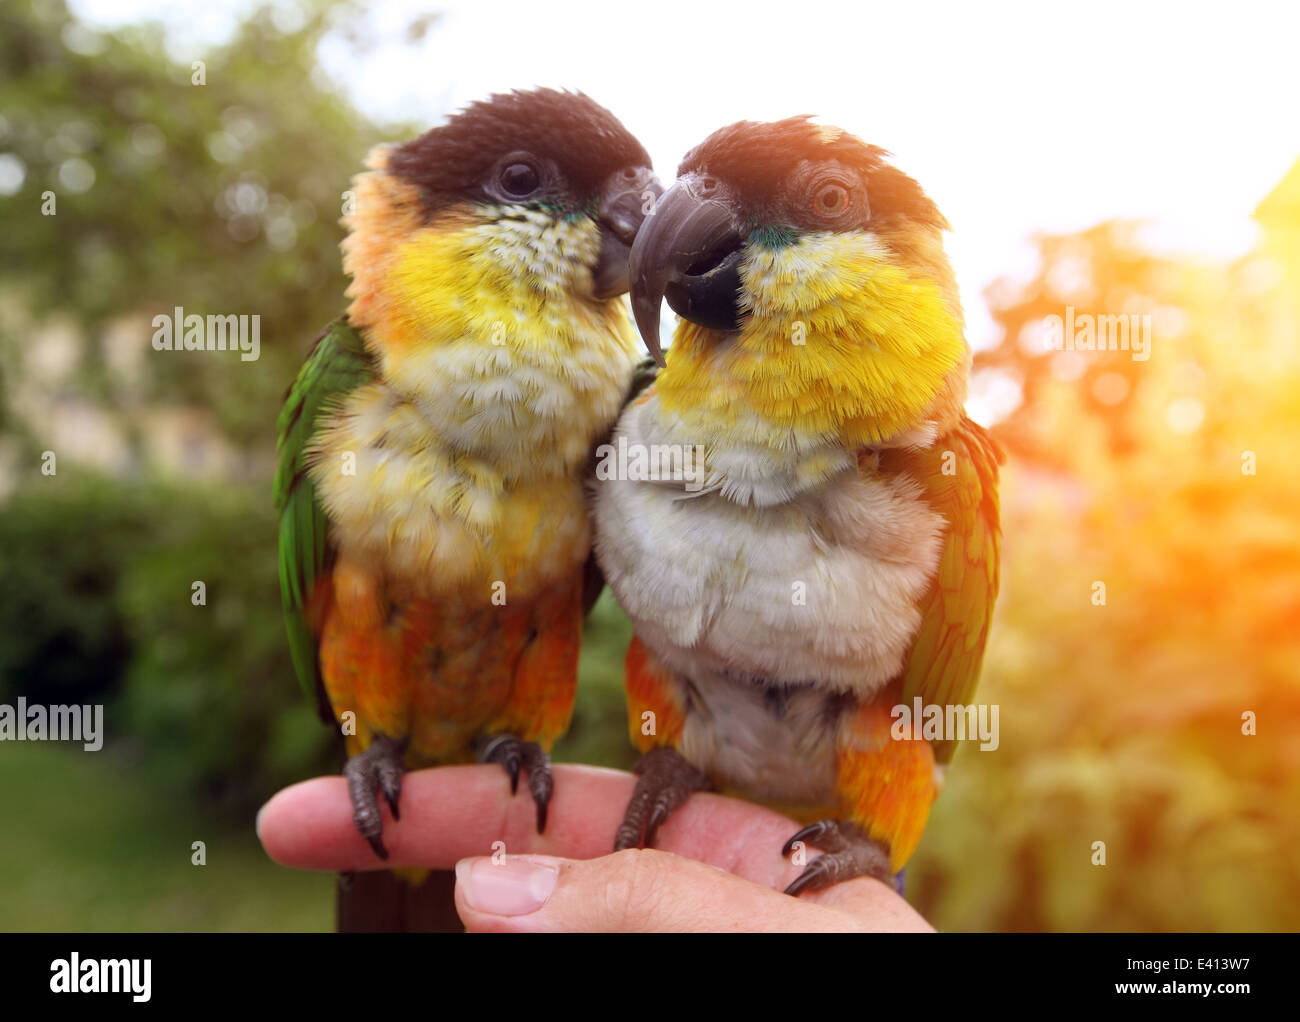 Two birds sitting on a womens finger - Stock Image